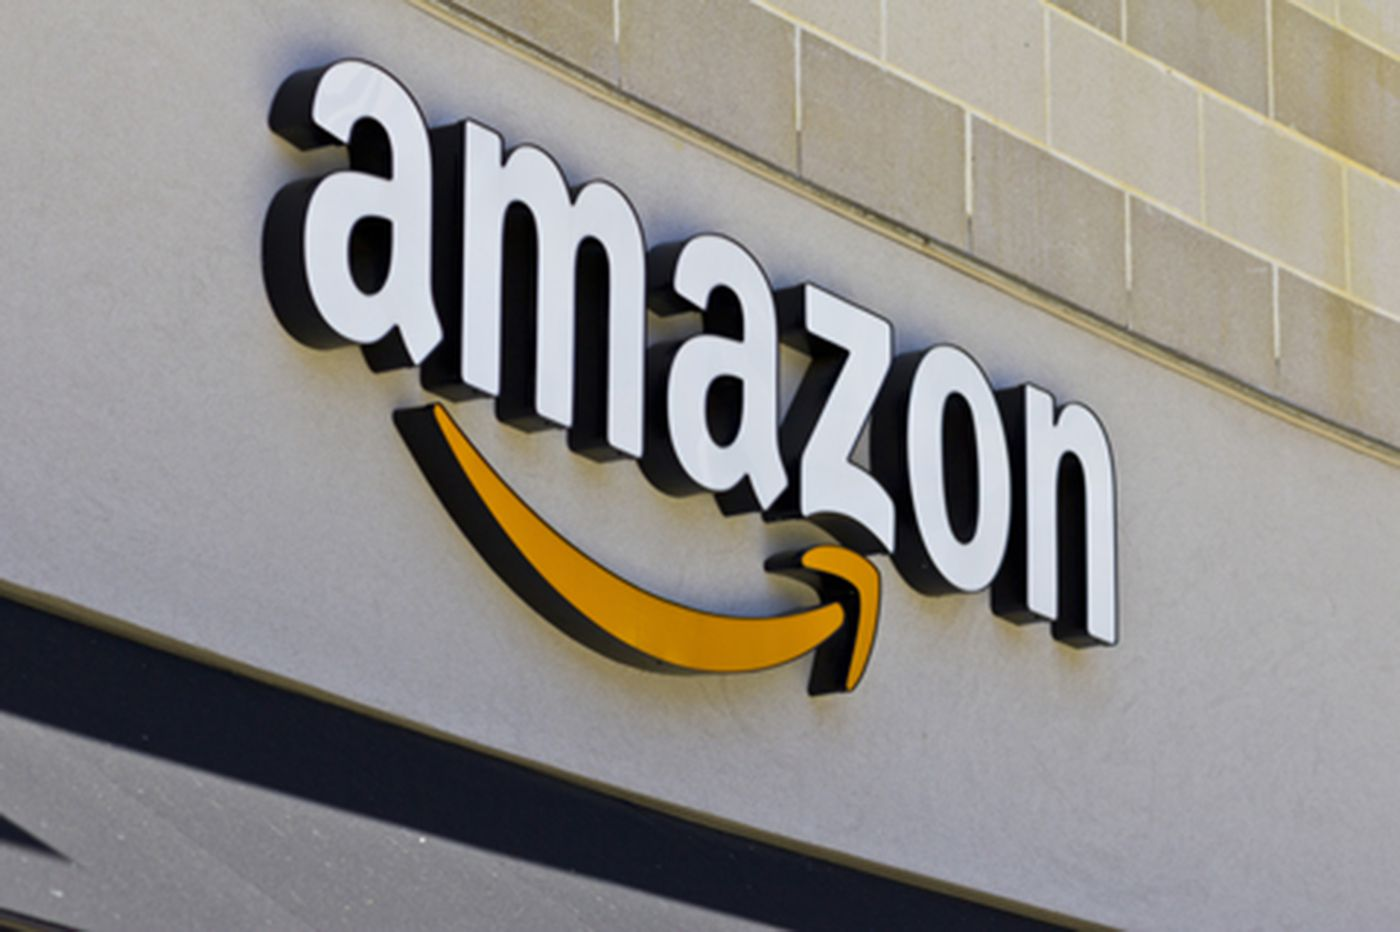 If Amazon picks Philly, it won't have to pay construction tax to fund affordable housing